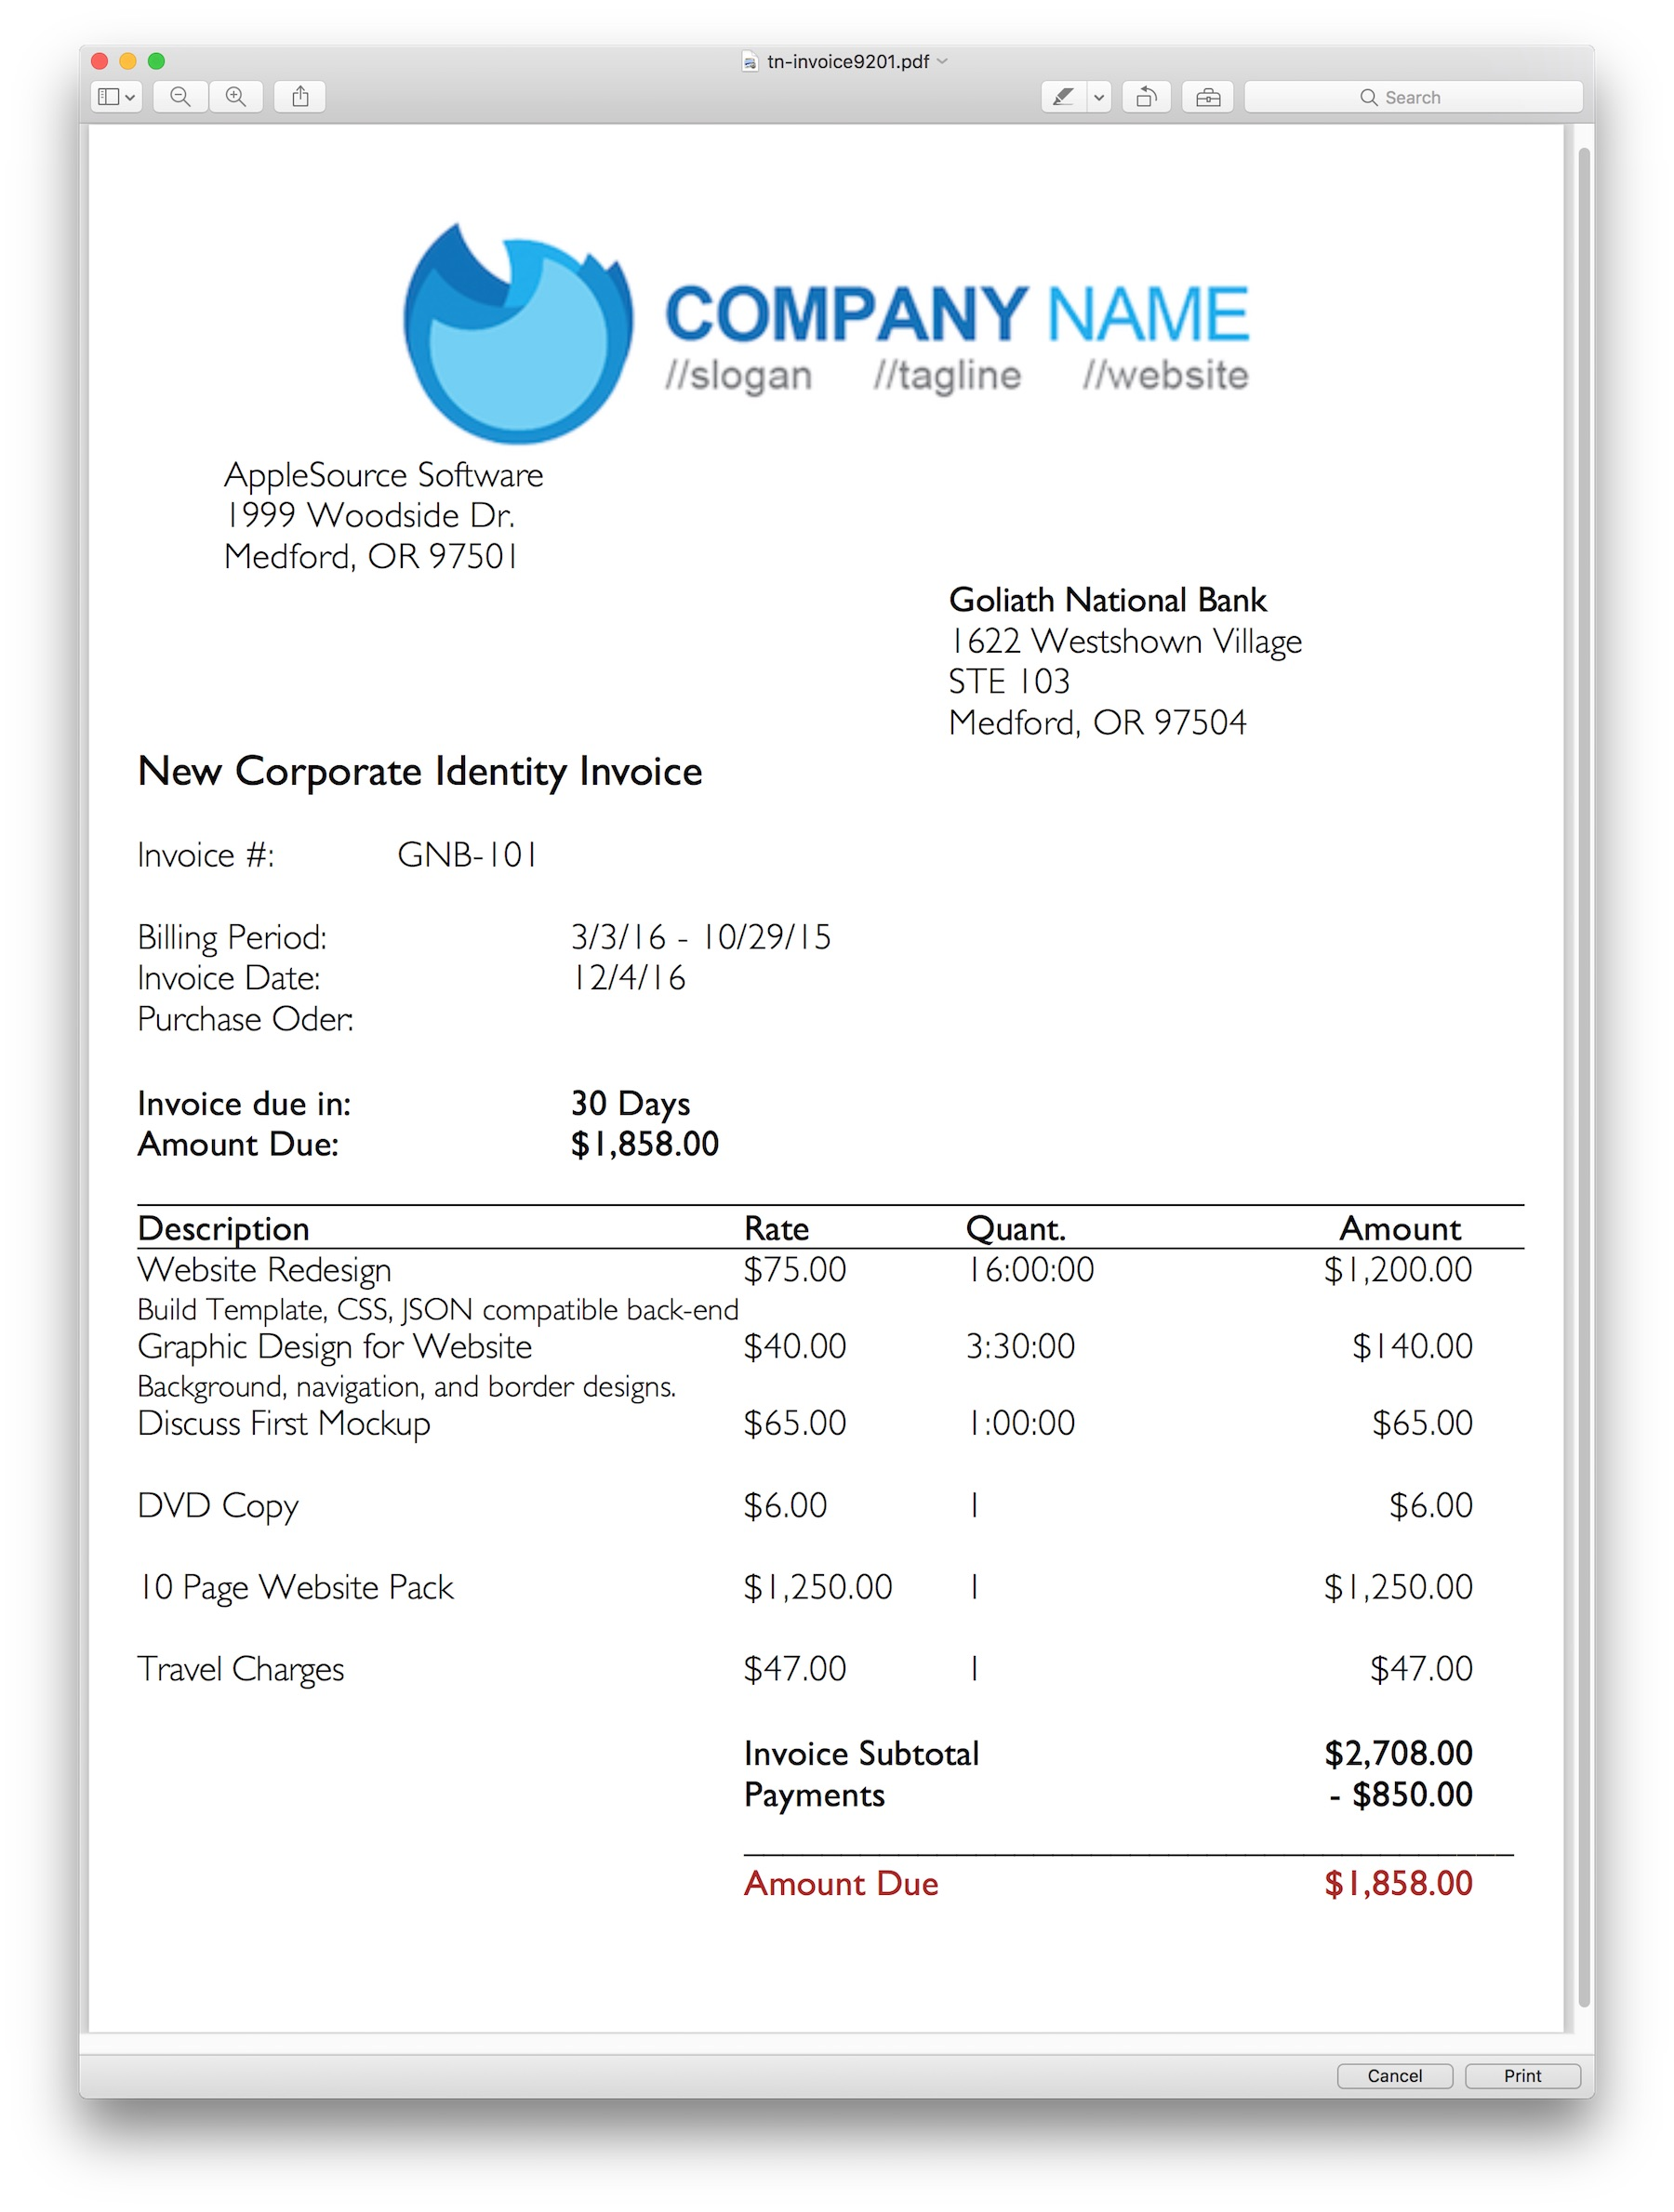 AppleSource Software TimeNet Invoice Templates Time Tracking – Professional Invoice Template